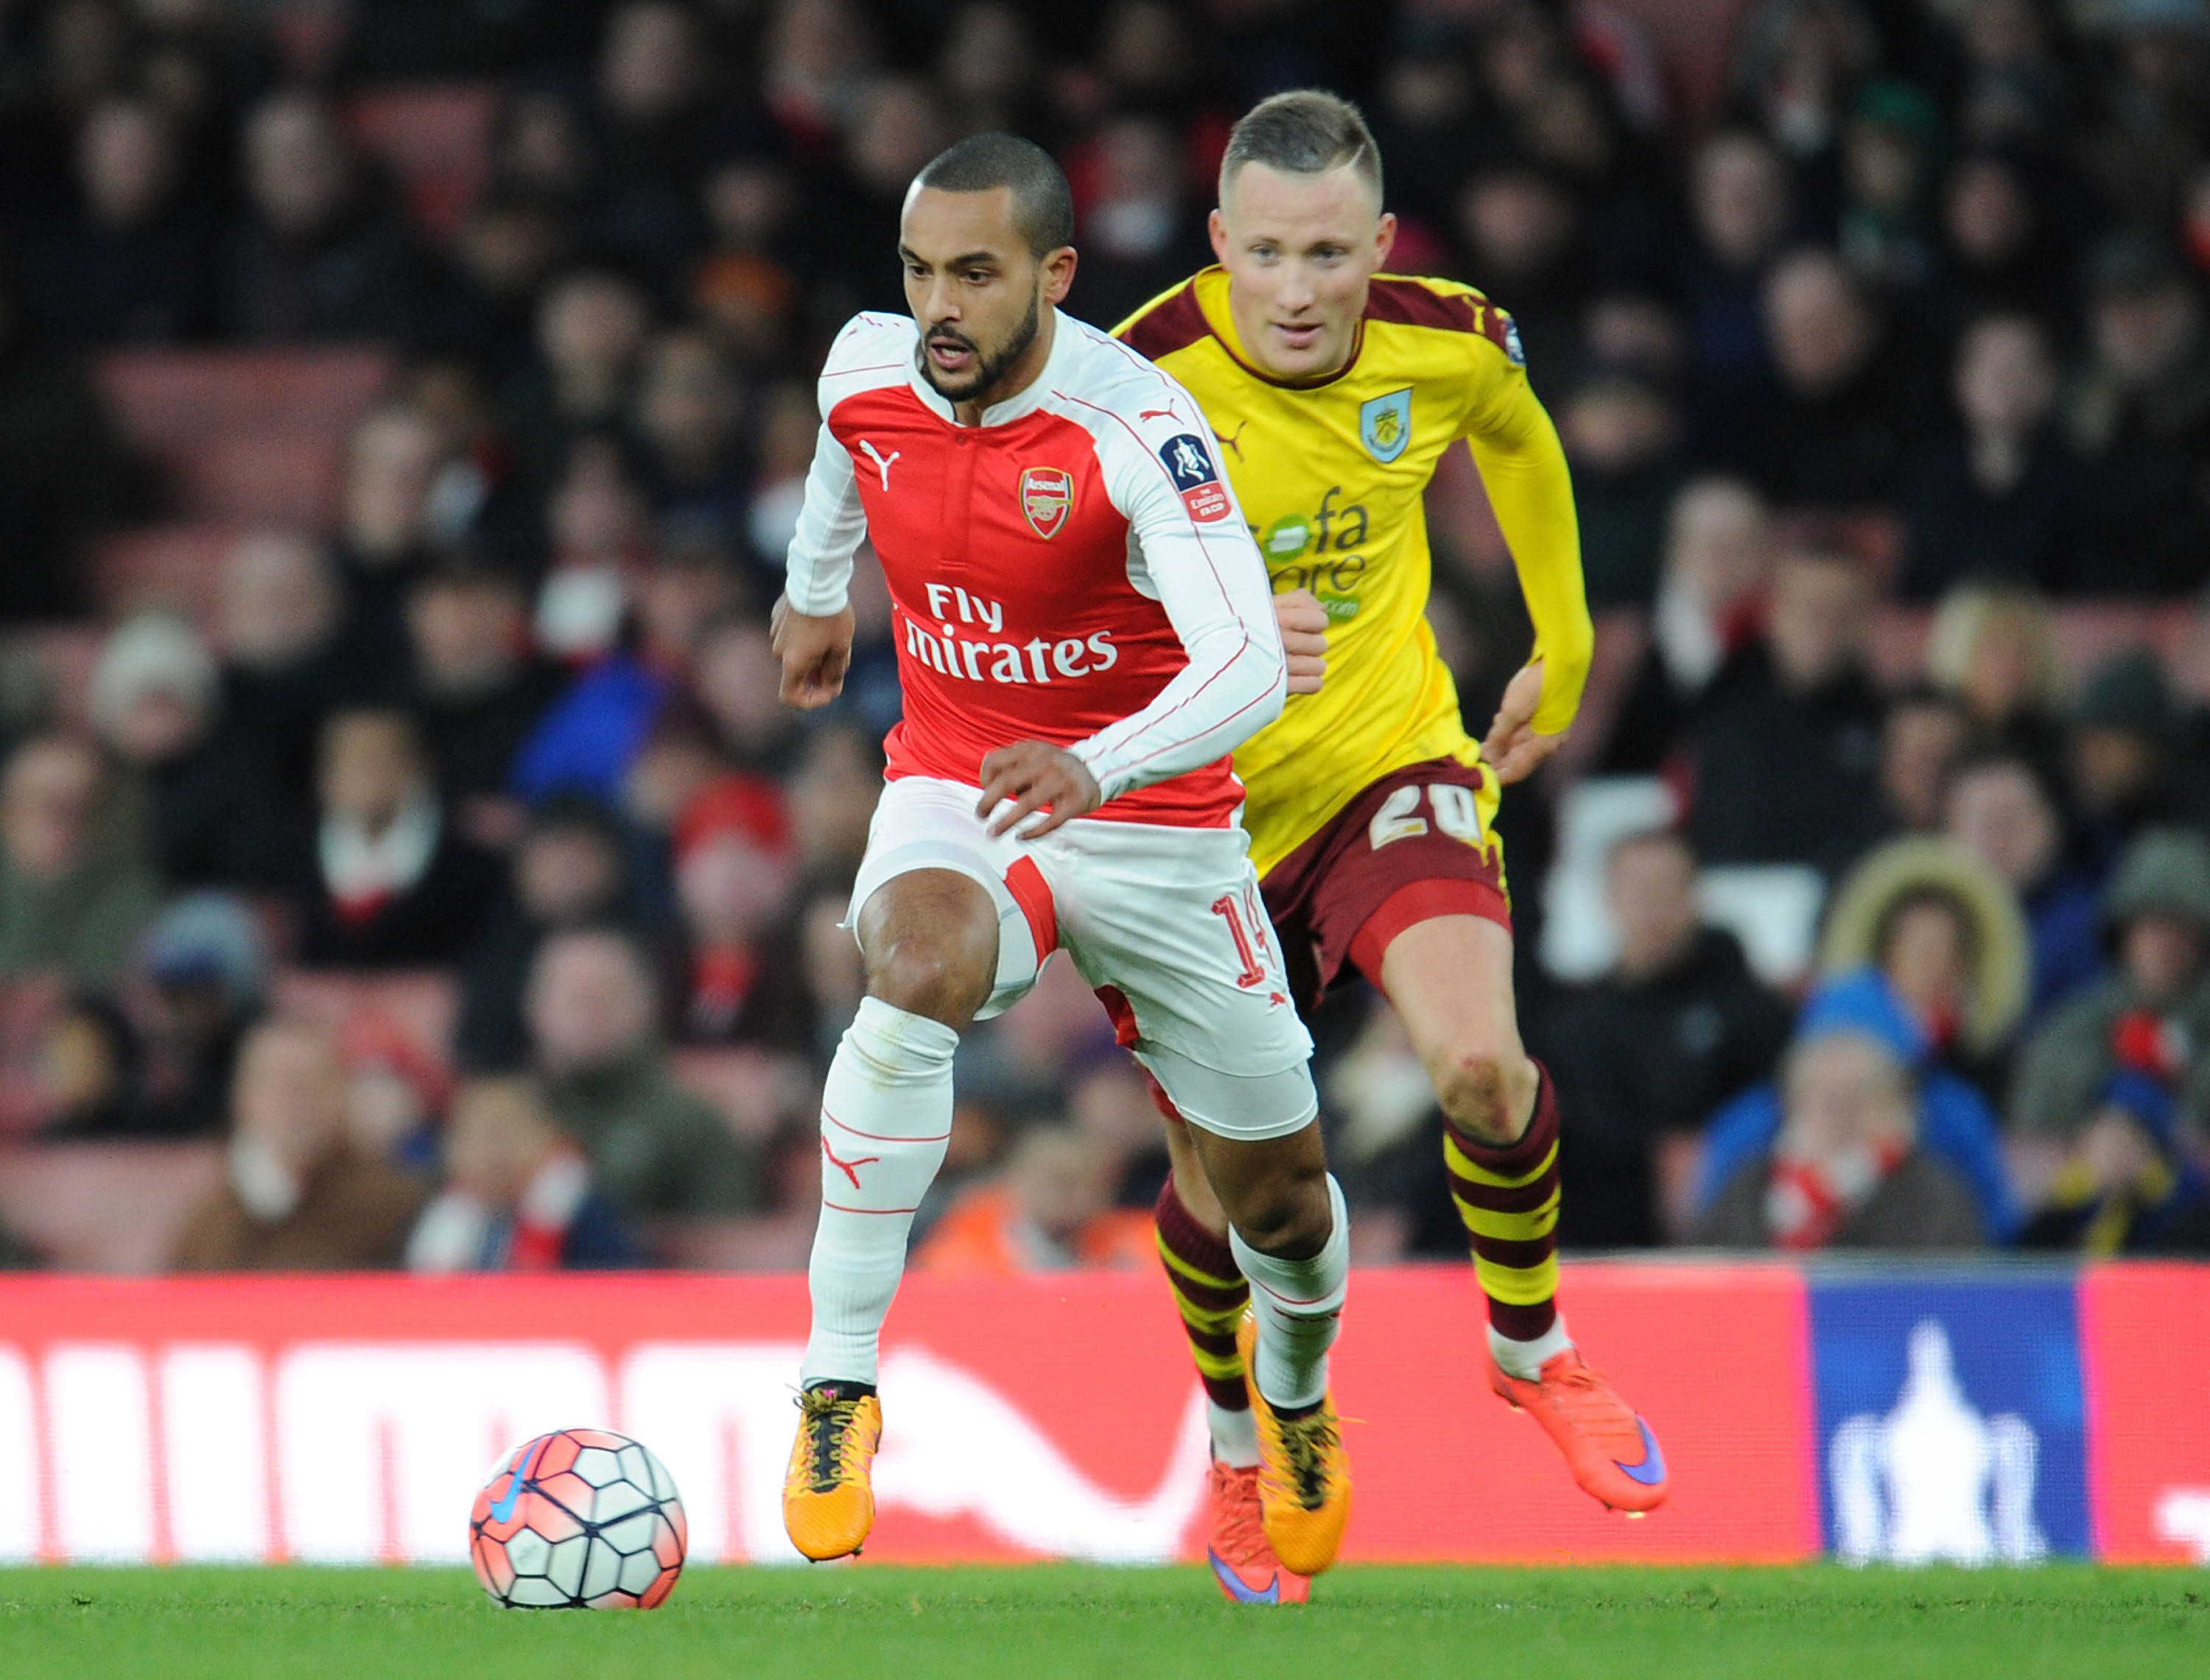 Theo Walcott must start for Arsenal ahead of Olivier Giroud against Leicester City